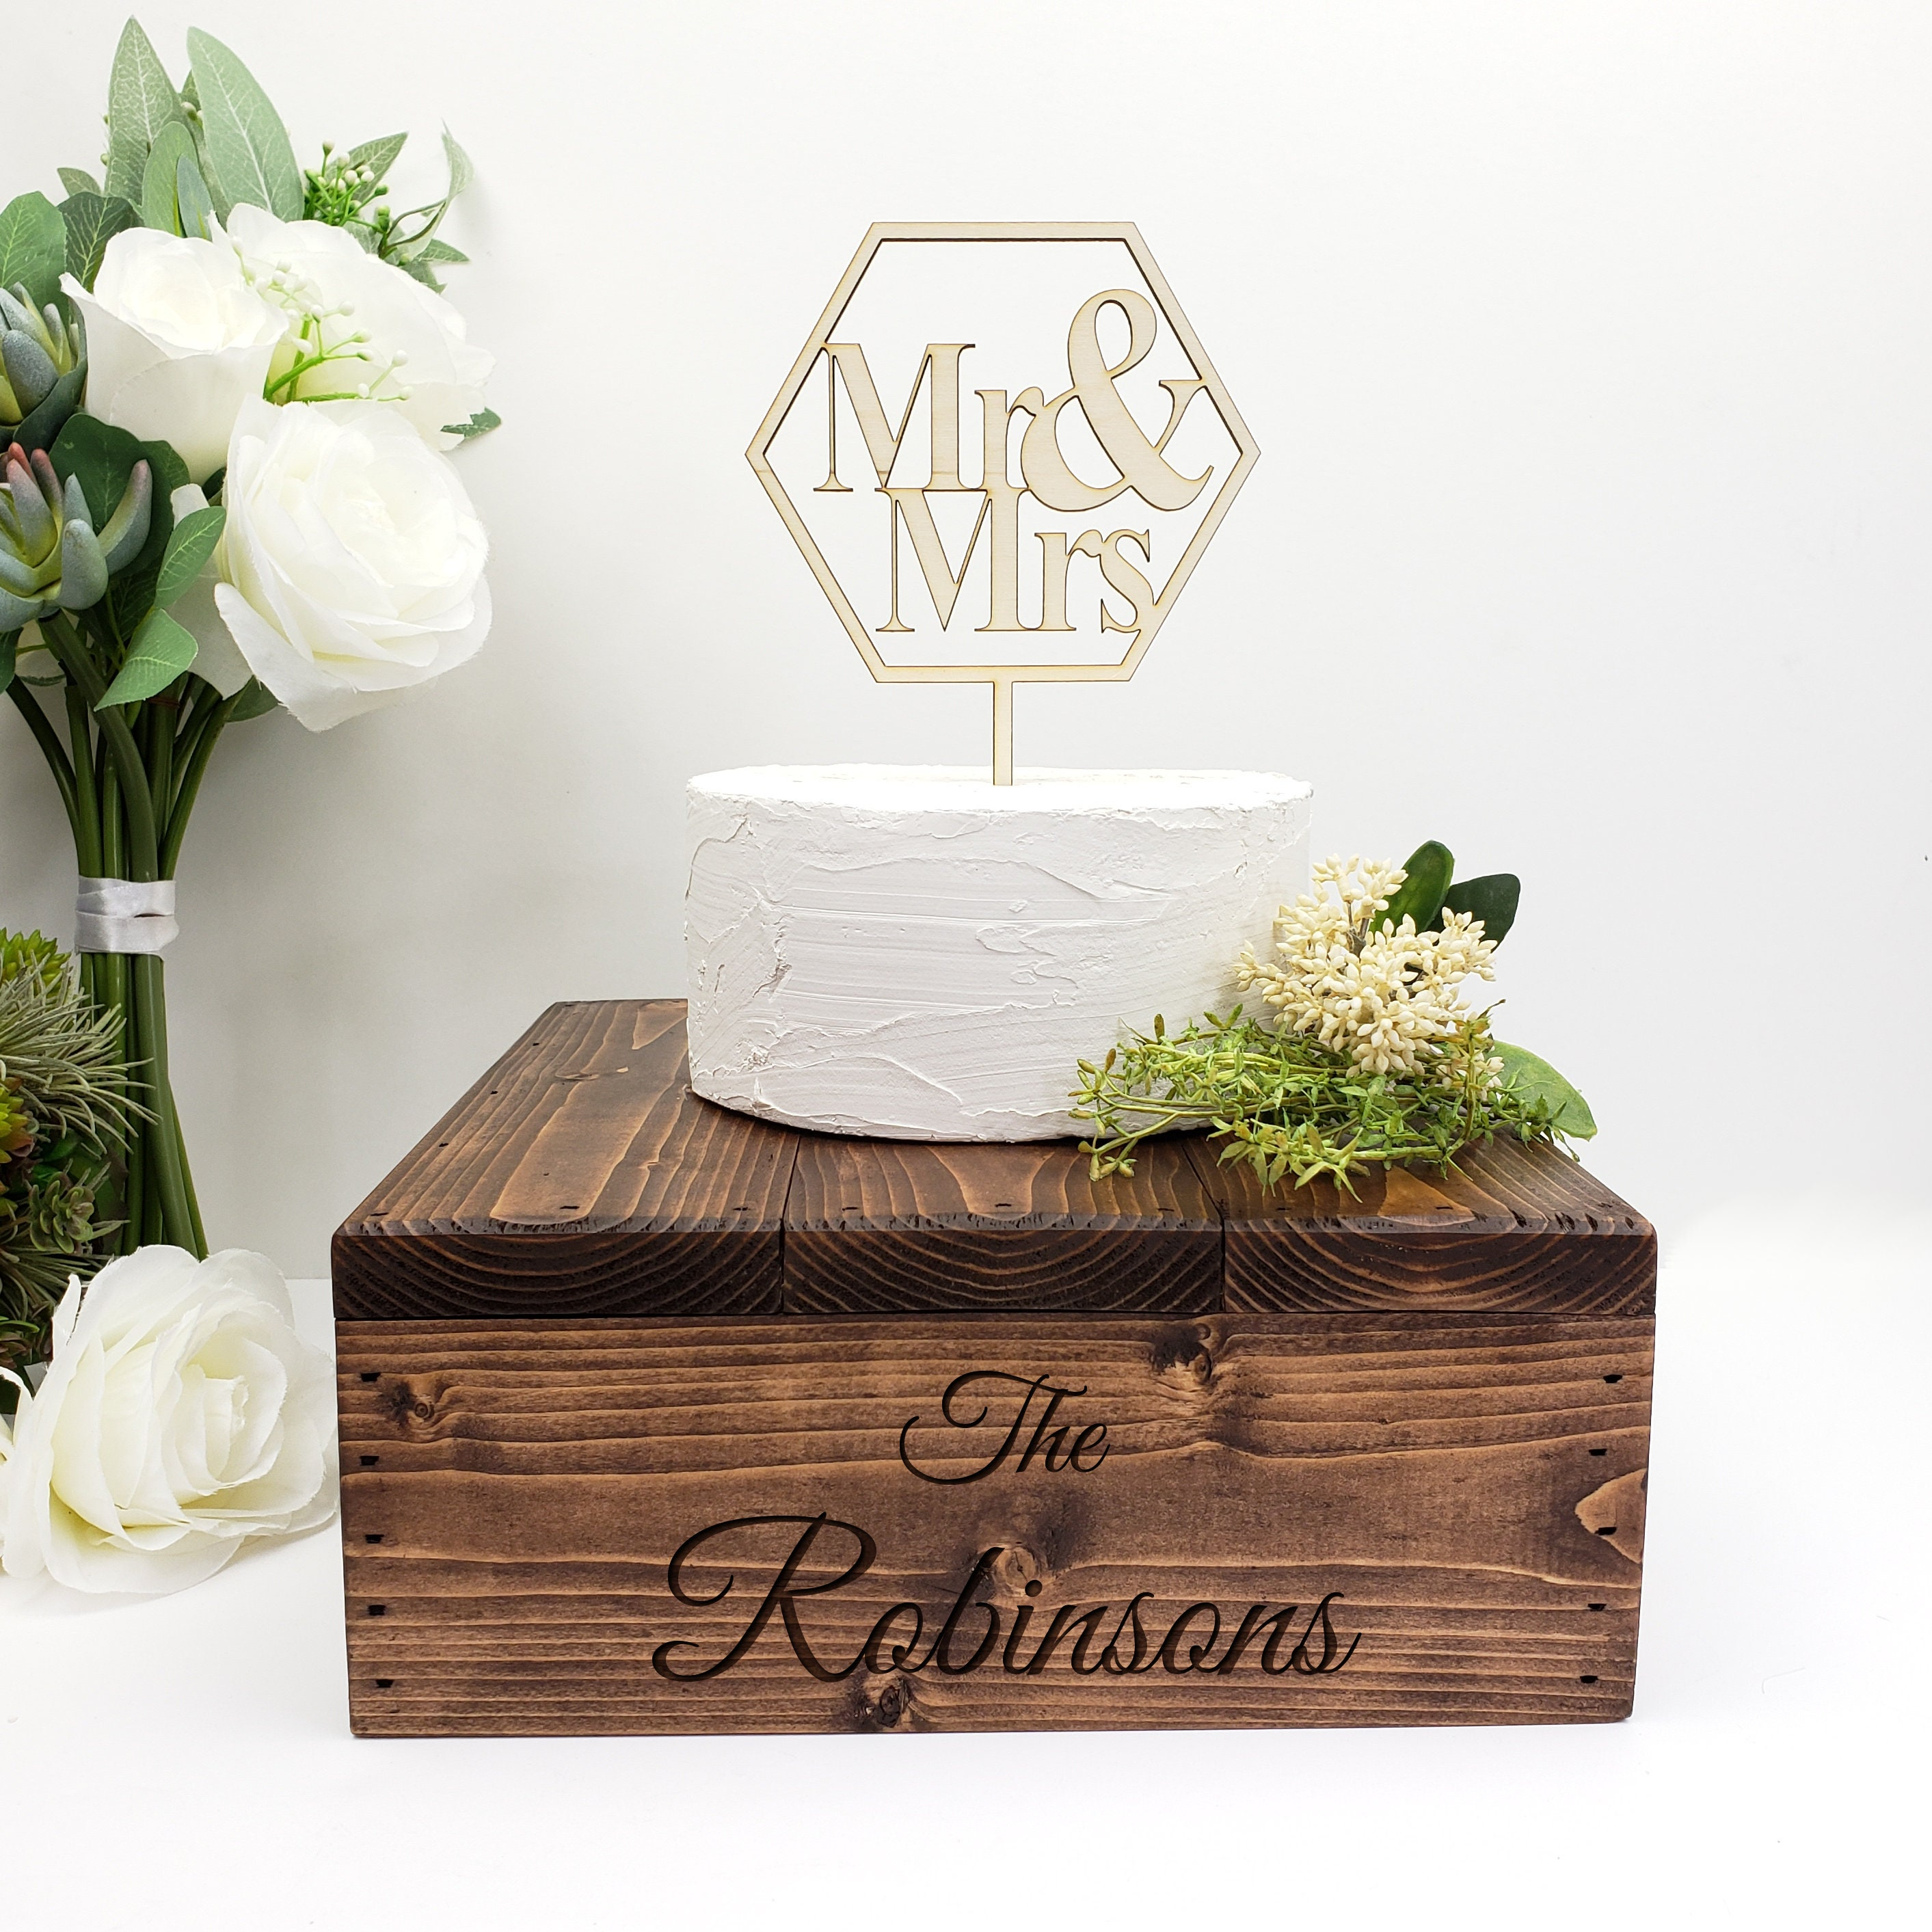 Personalized Wooden Cake Stand | Rustic Wedding | Custom Cake Stand ...